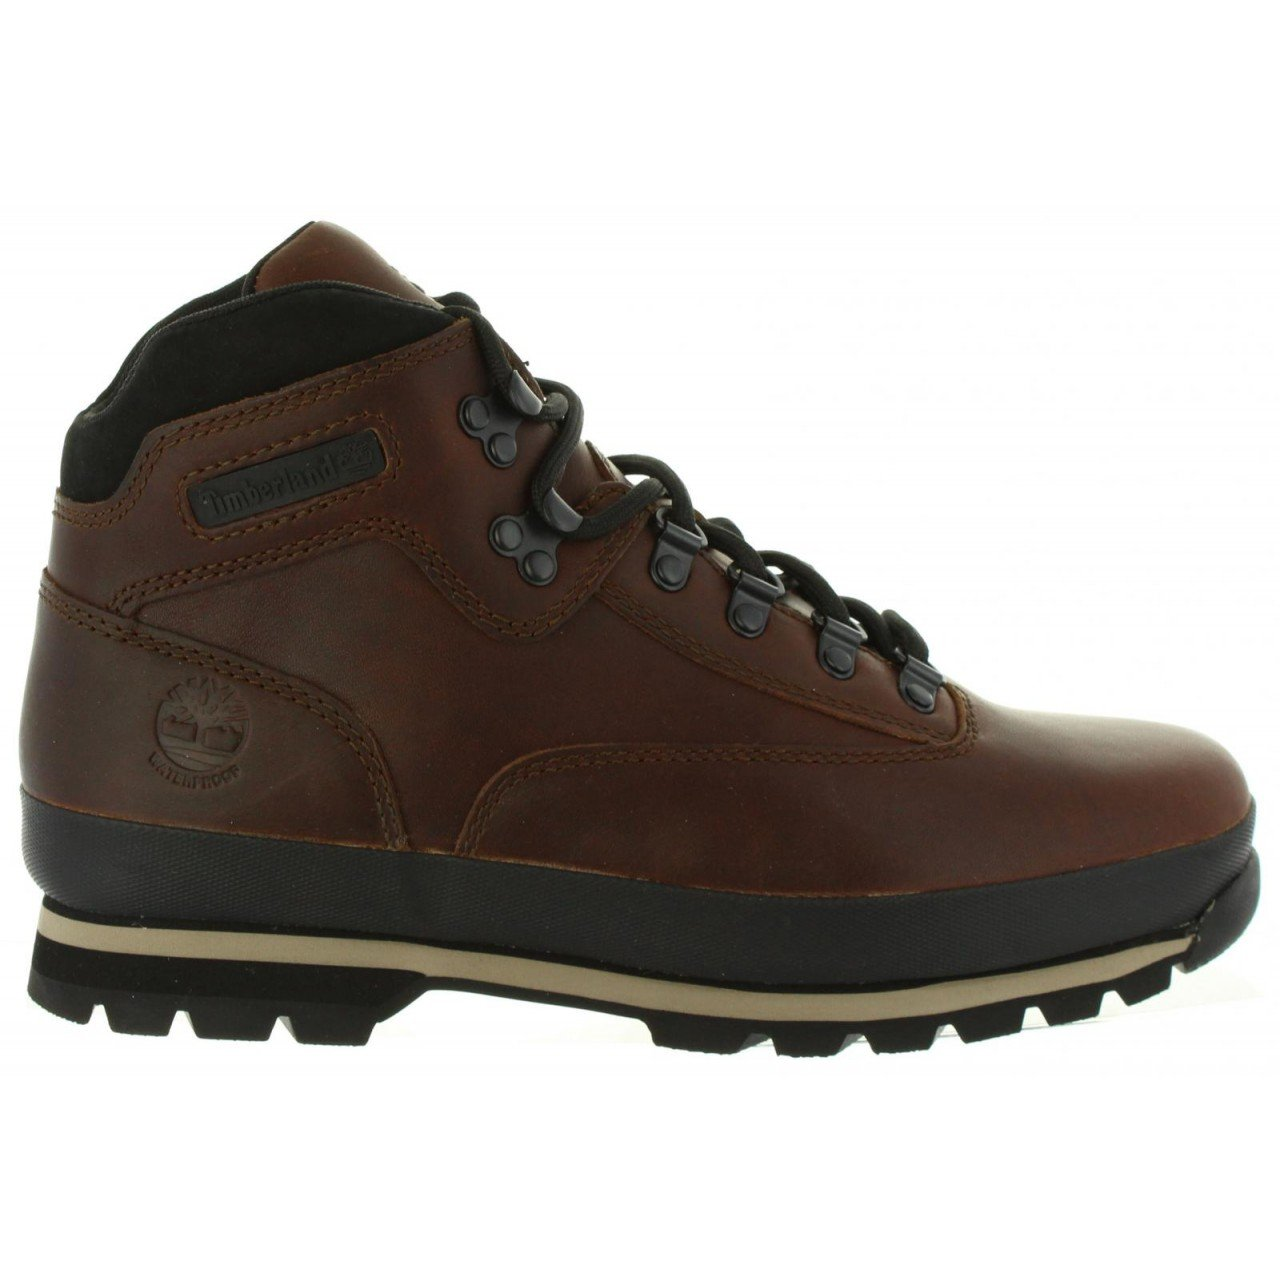 Timberland - Euro Hiker Leather Homme - marron - 41